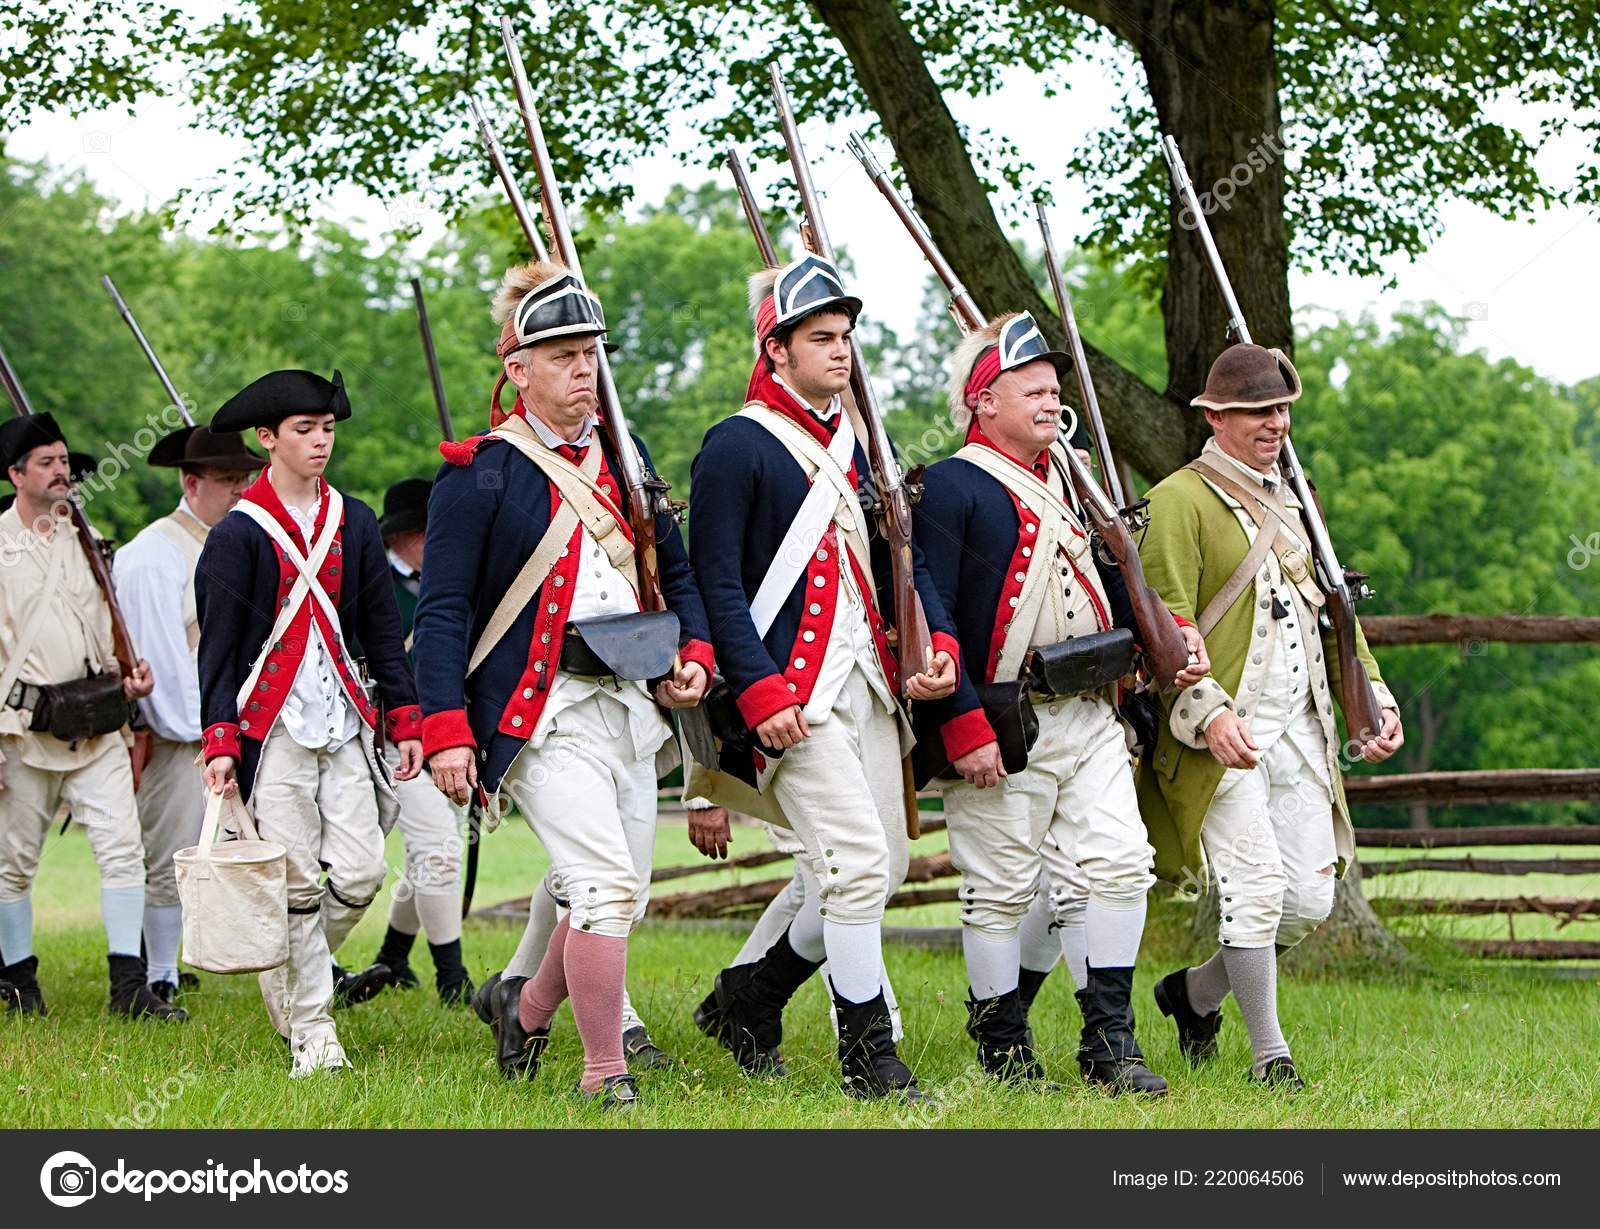 Annual Reenactment Battle Monmouth Revolutionary War